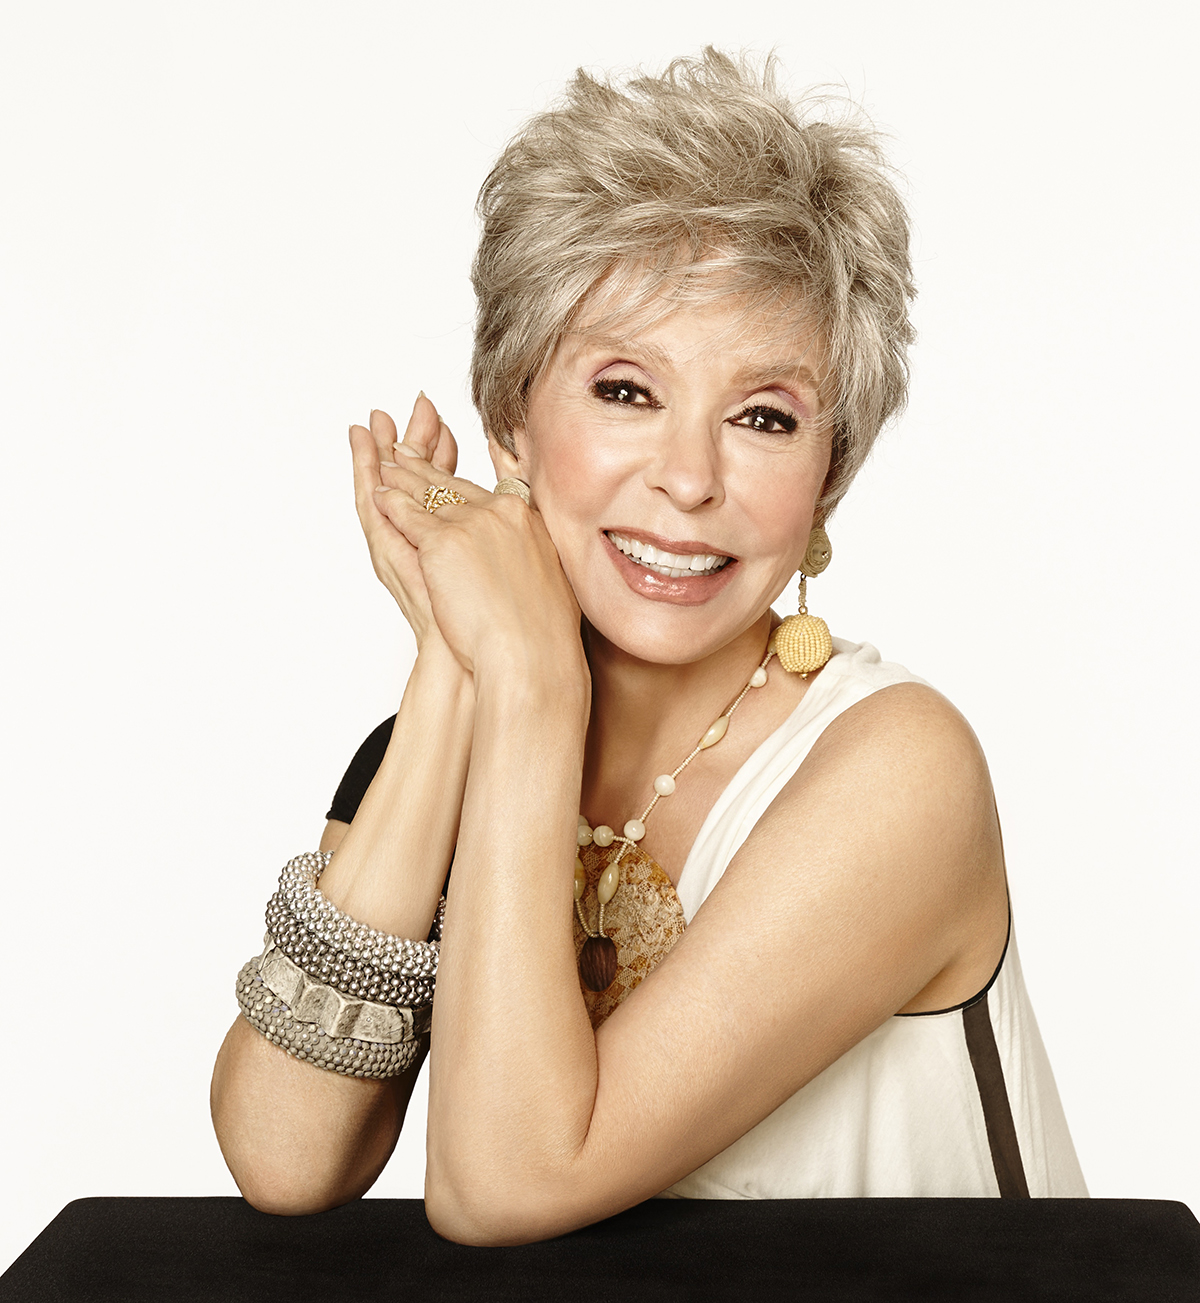 """Western Illinois University paid tribute to Rita Moreno earlier this year when she appeared there for """"A Night with Rita Moreno."""""""